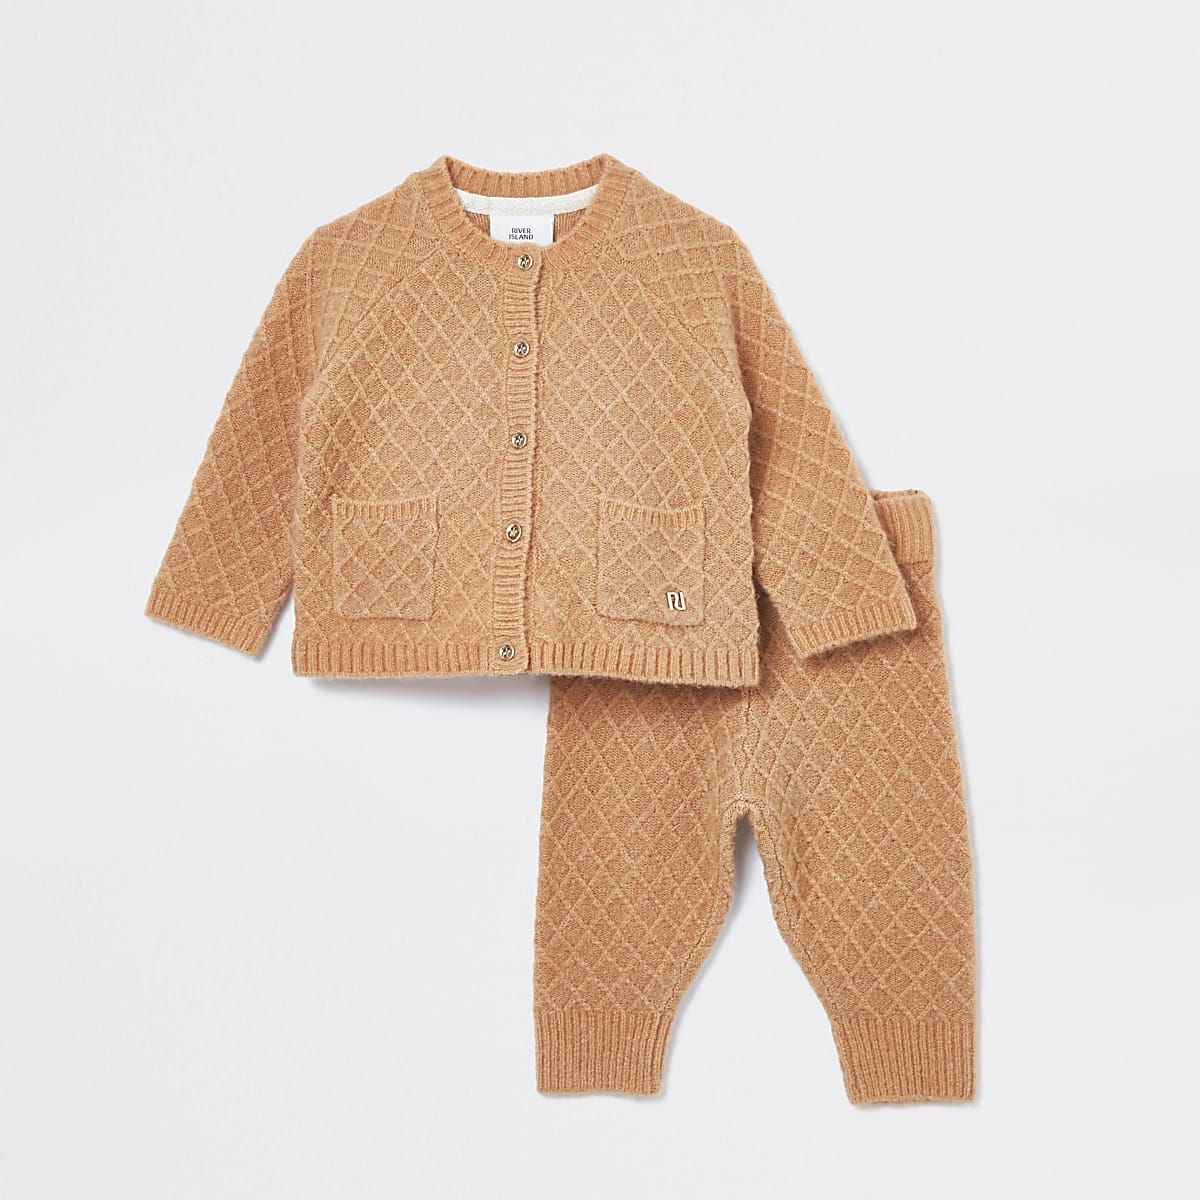 Baby camel knitted cardigan outfit